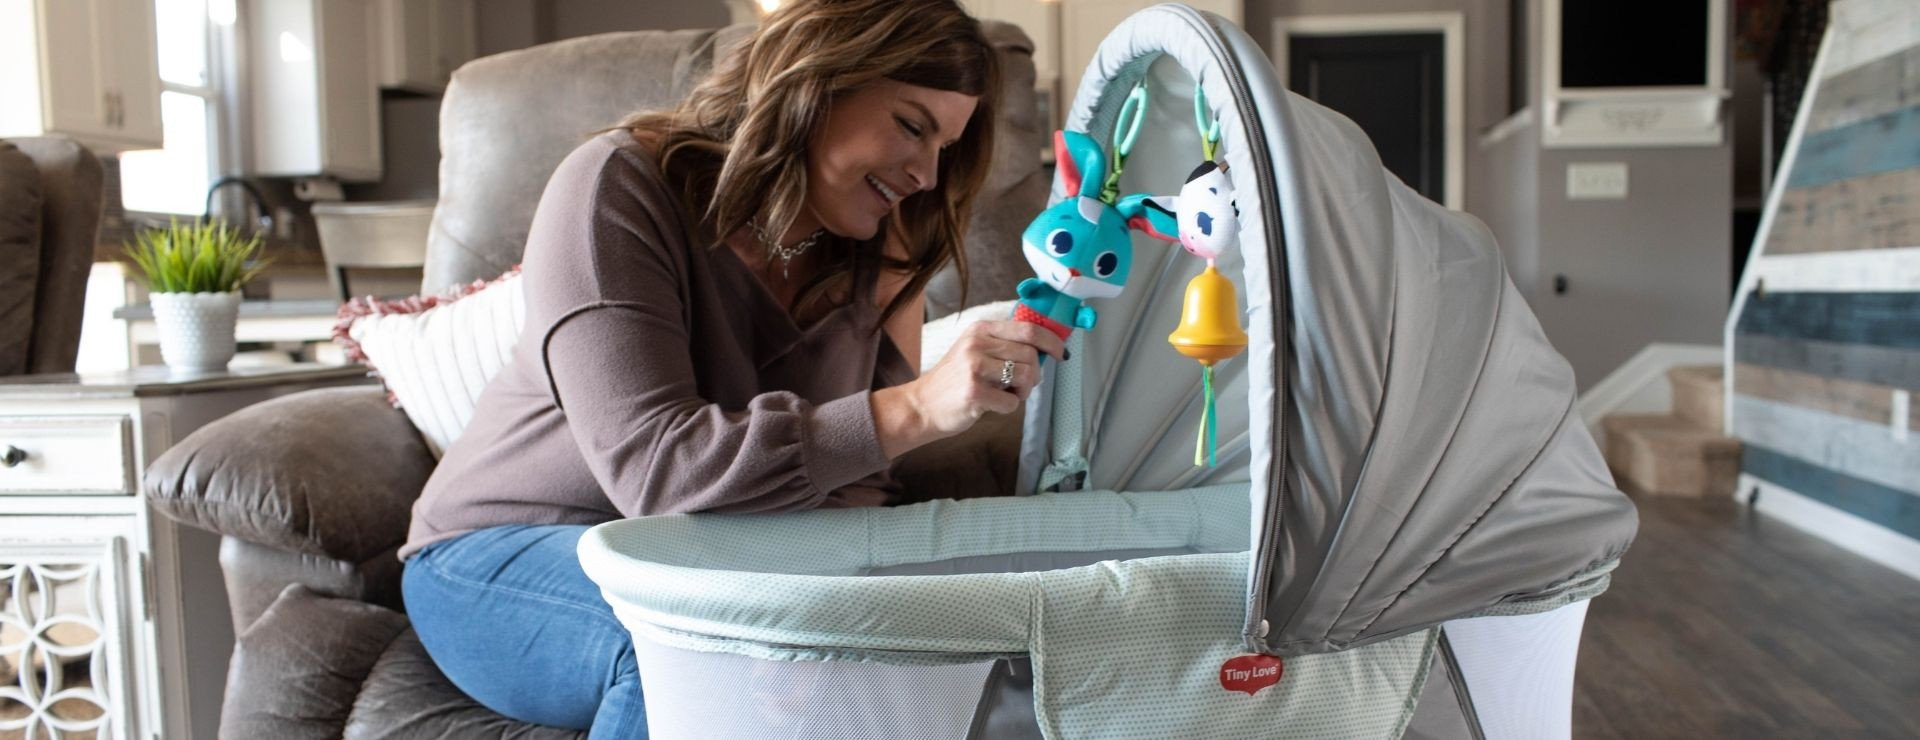 Fun jitter and wind chime toys support your baby's developing motor skills